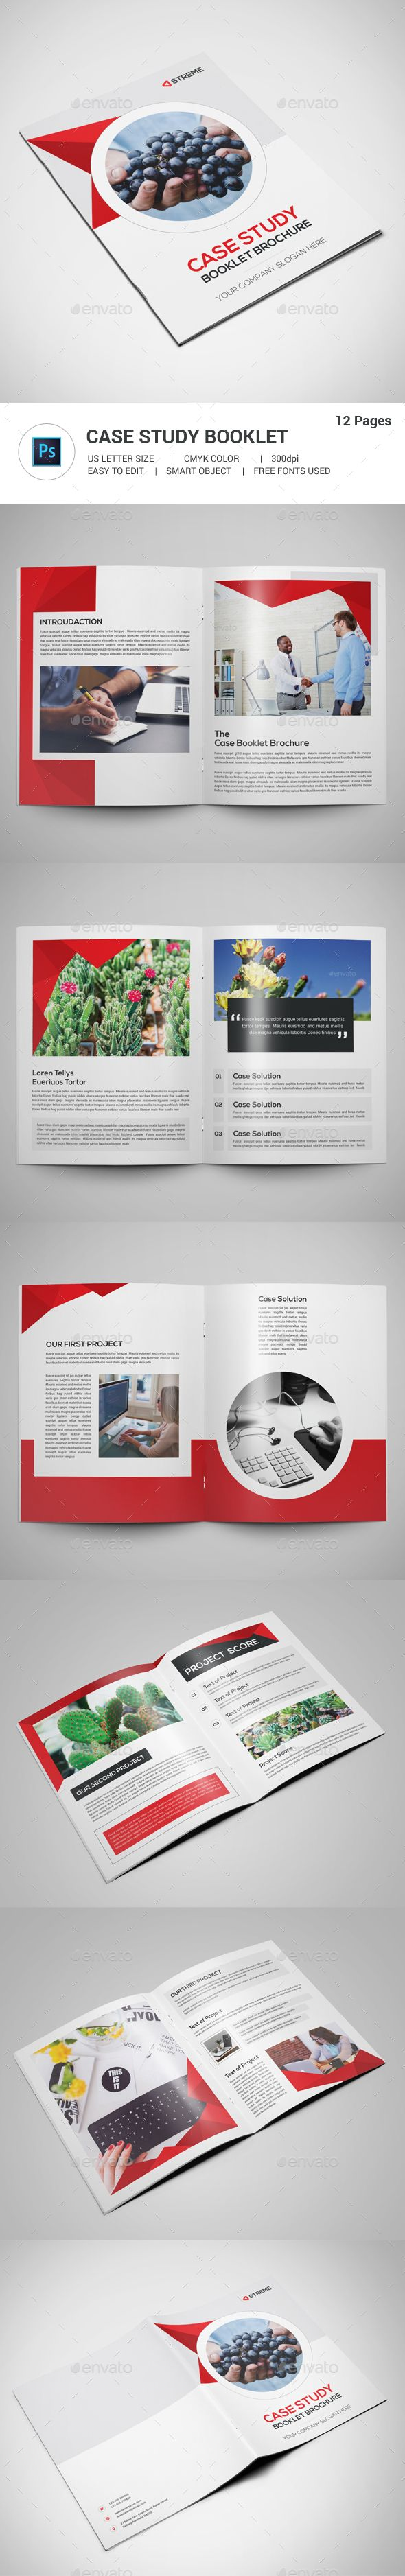 Best 25+ Booklet template ideas on Pinterest | Brochure design ...